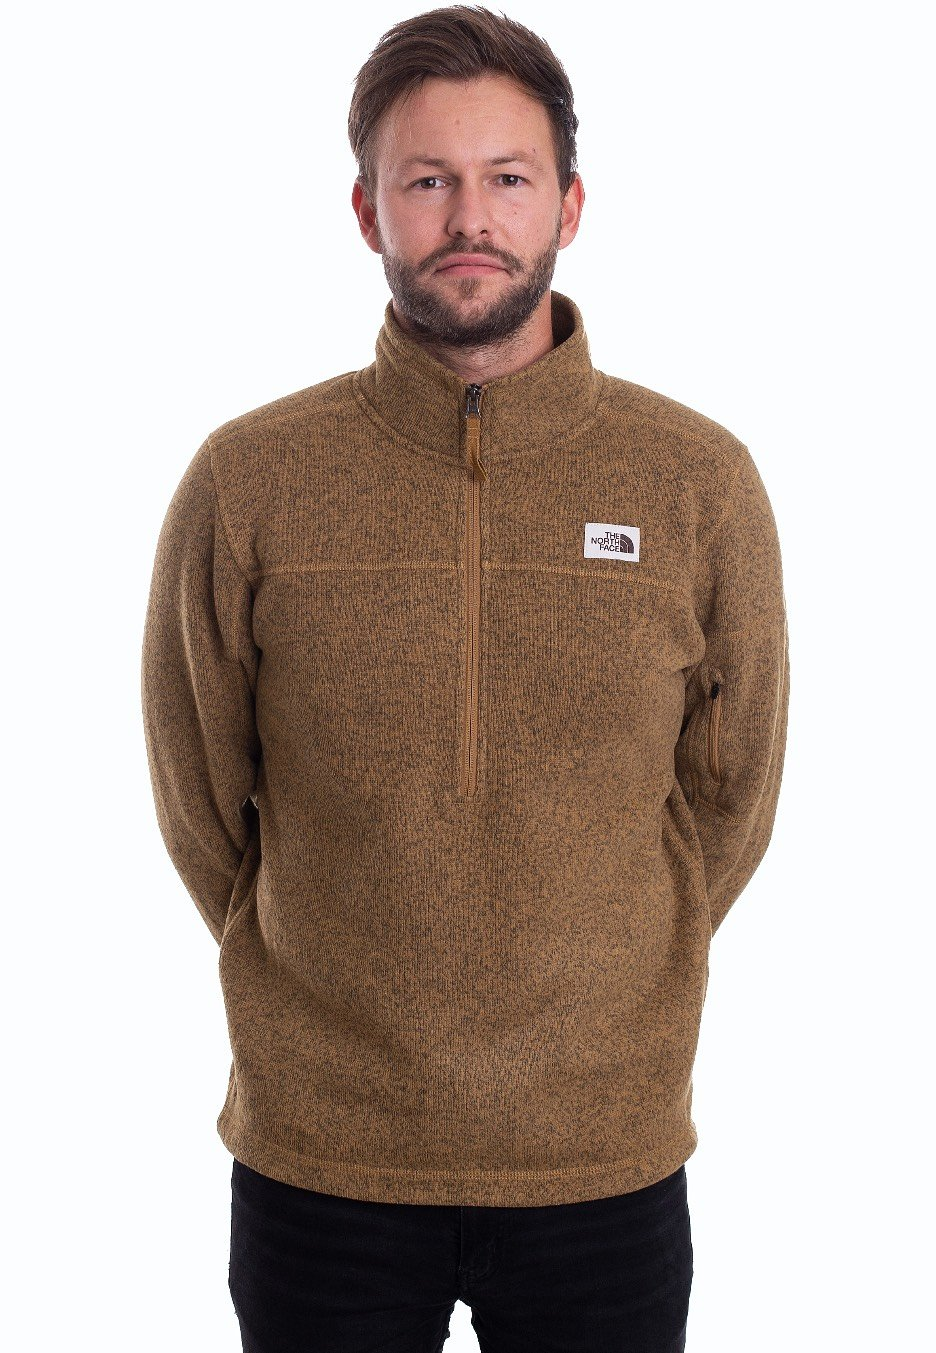 size 40 best selling authentic quality The North Face - Gordon Lyons 1/4 Zip British Khaki Heather - Pullover